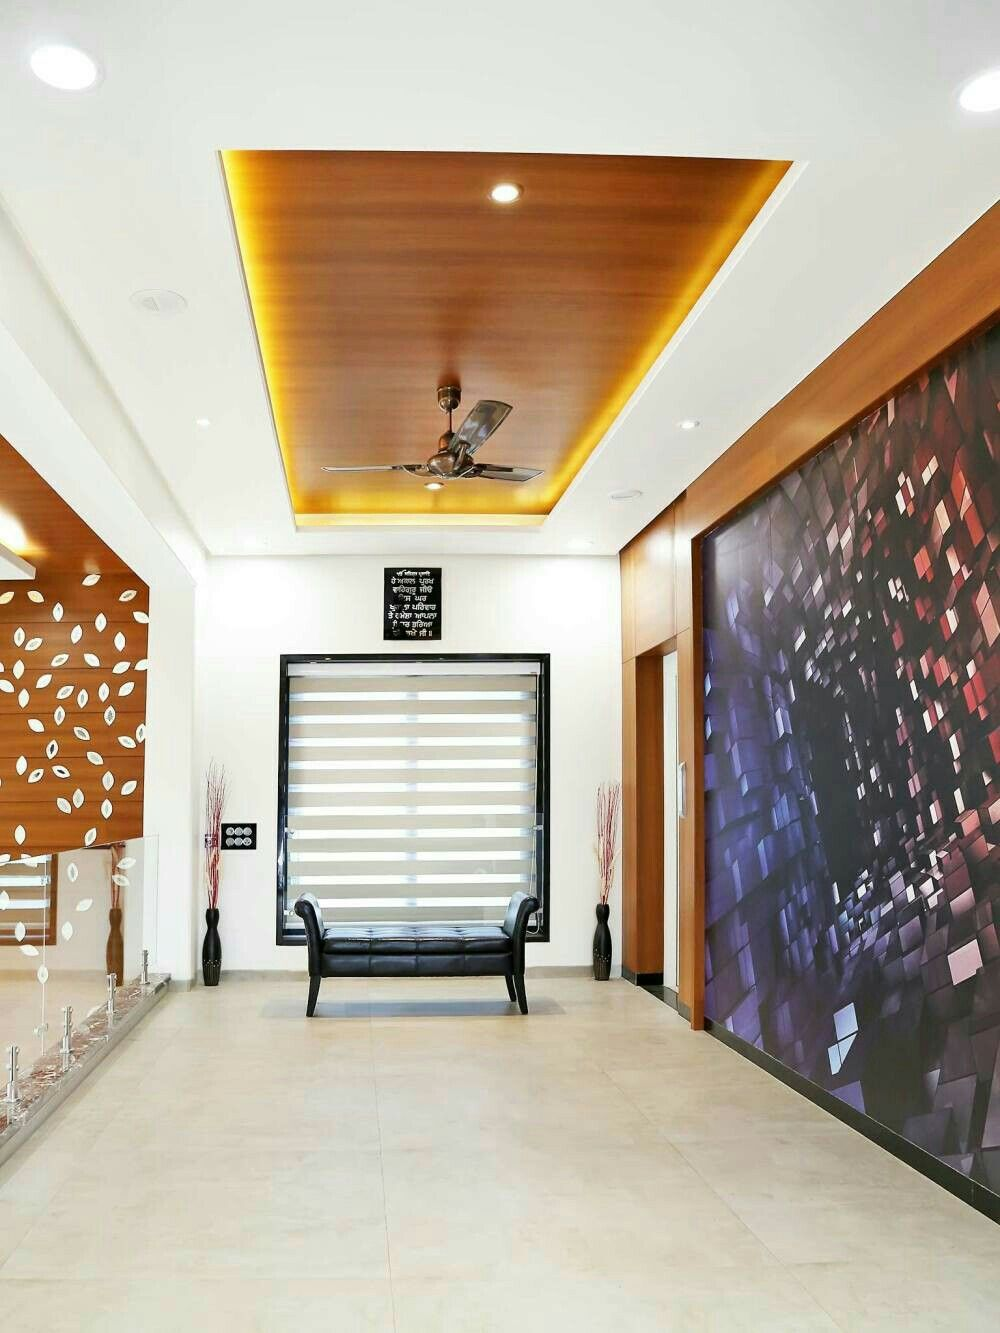 Contemporary Ceiling Designs For Living Room: Pin By Abanti Mustafi On False Ceiling